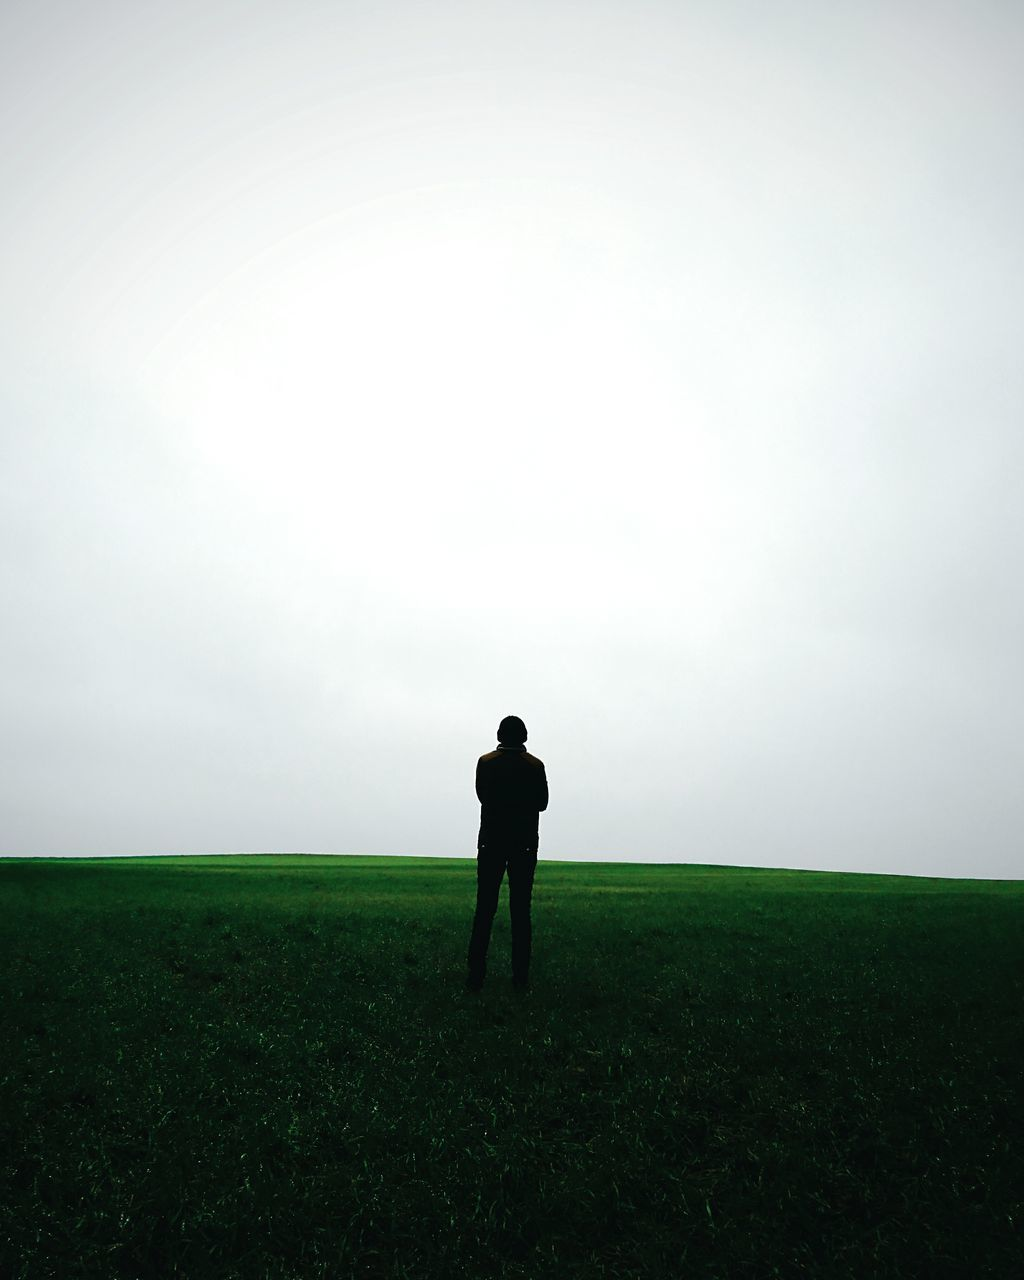 field, landscape, full length, grass, one person, tranquility, nature, sky, standing, outdoors, fog, tranquil scene, men, beauty in nature, real people, growth, day, scenics, one man only, people